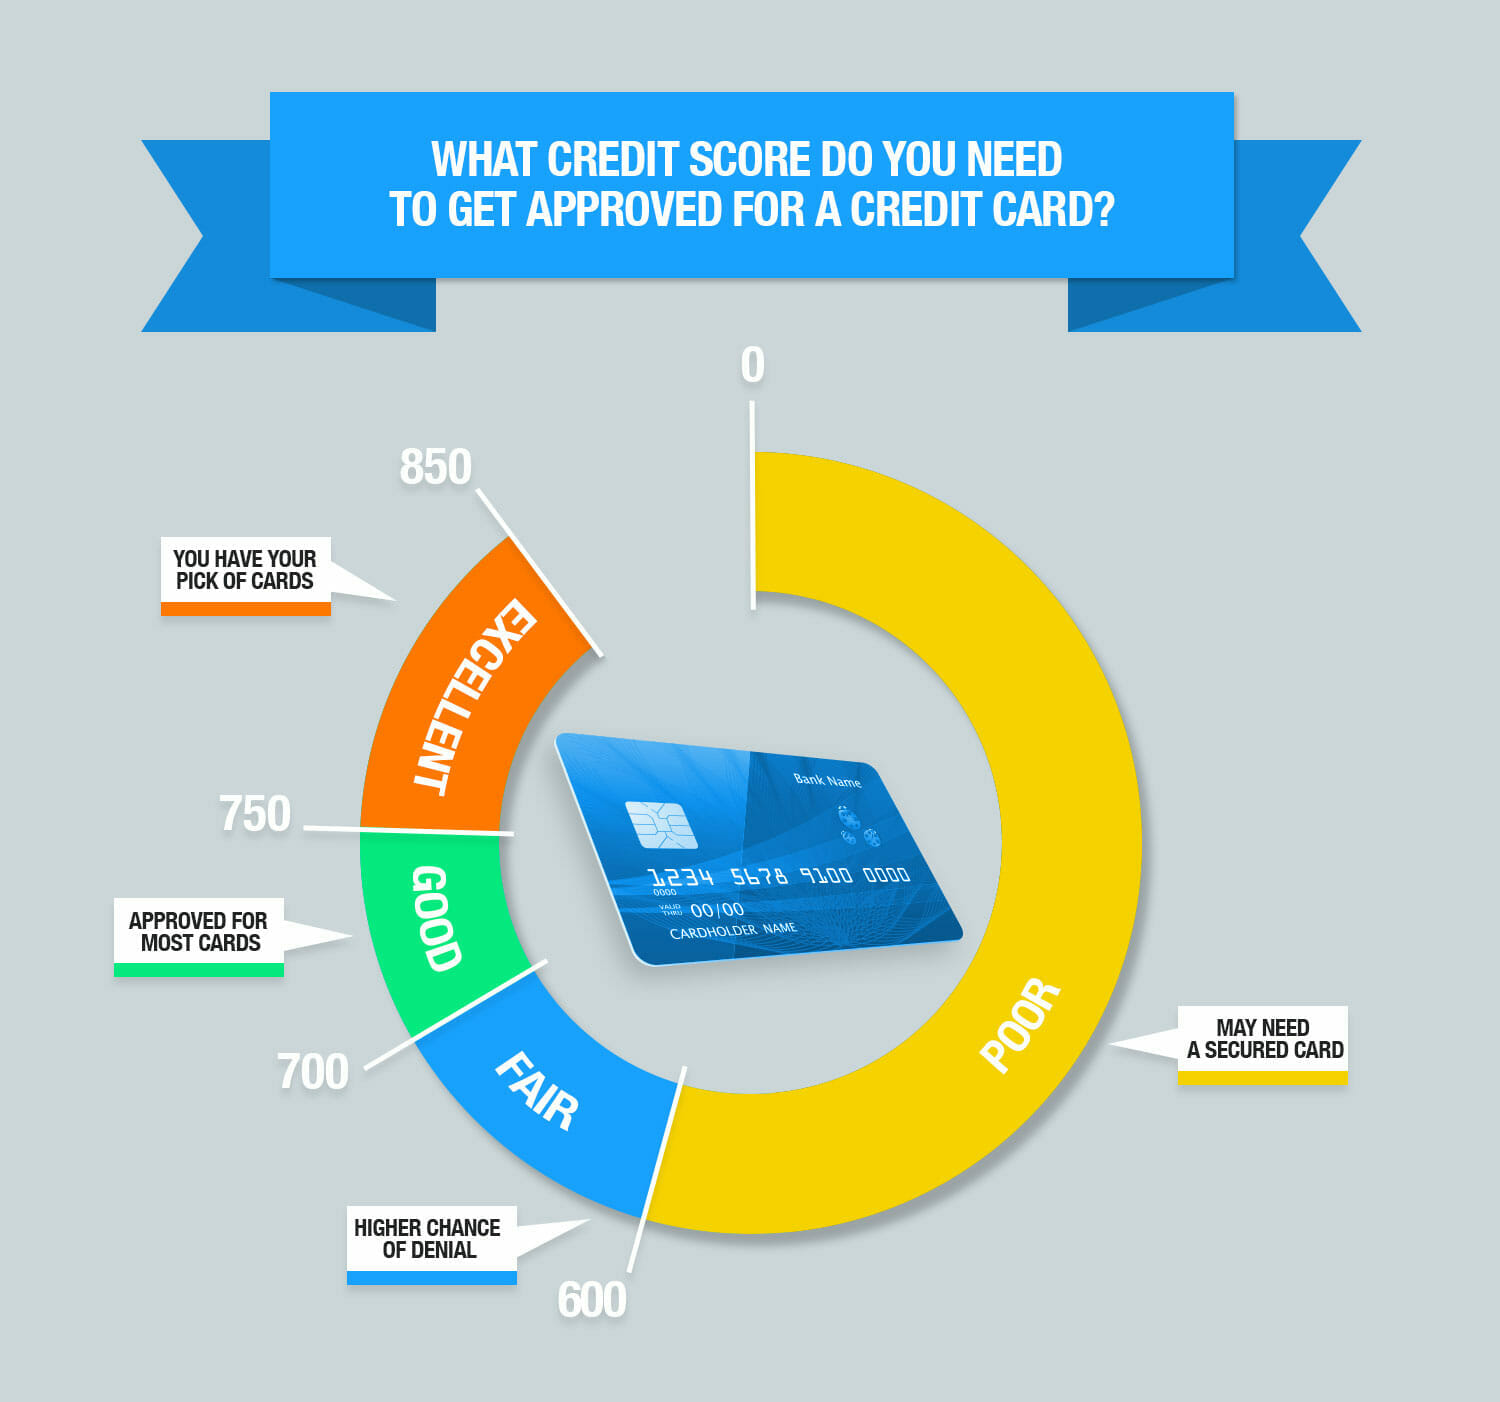 Credit Cards For Credit Score Under 600 >> You May Not Qualify For An Applecard Philip Elmer Dewitt